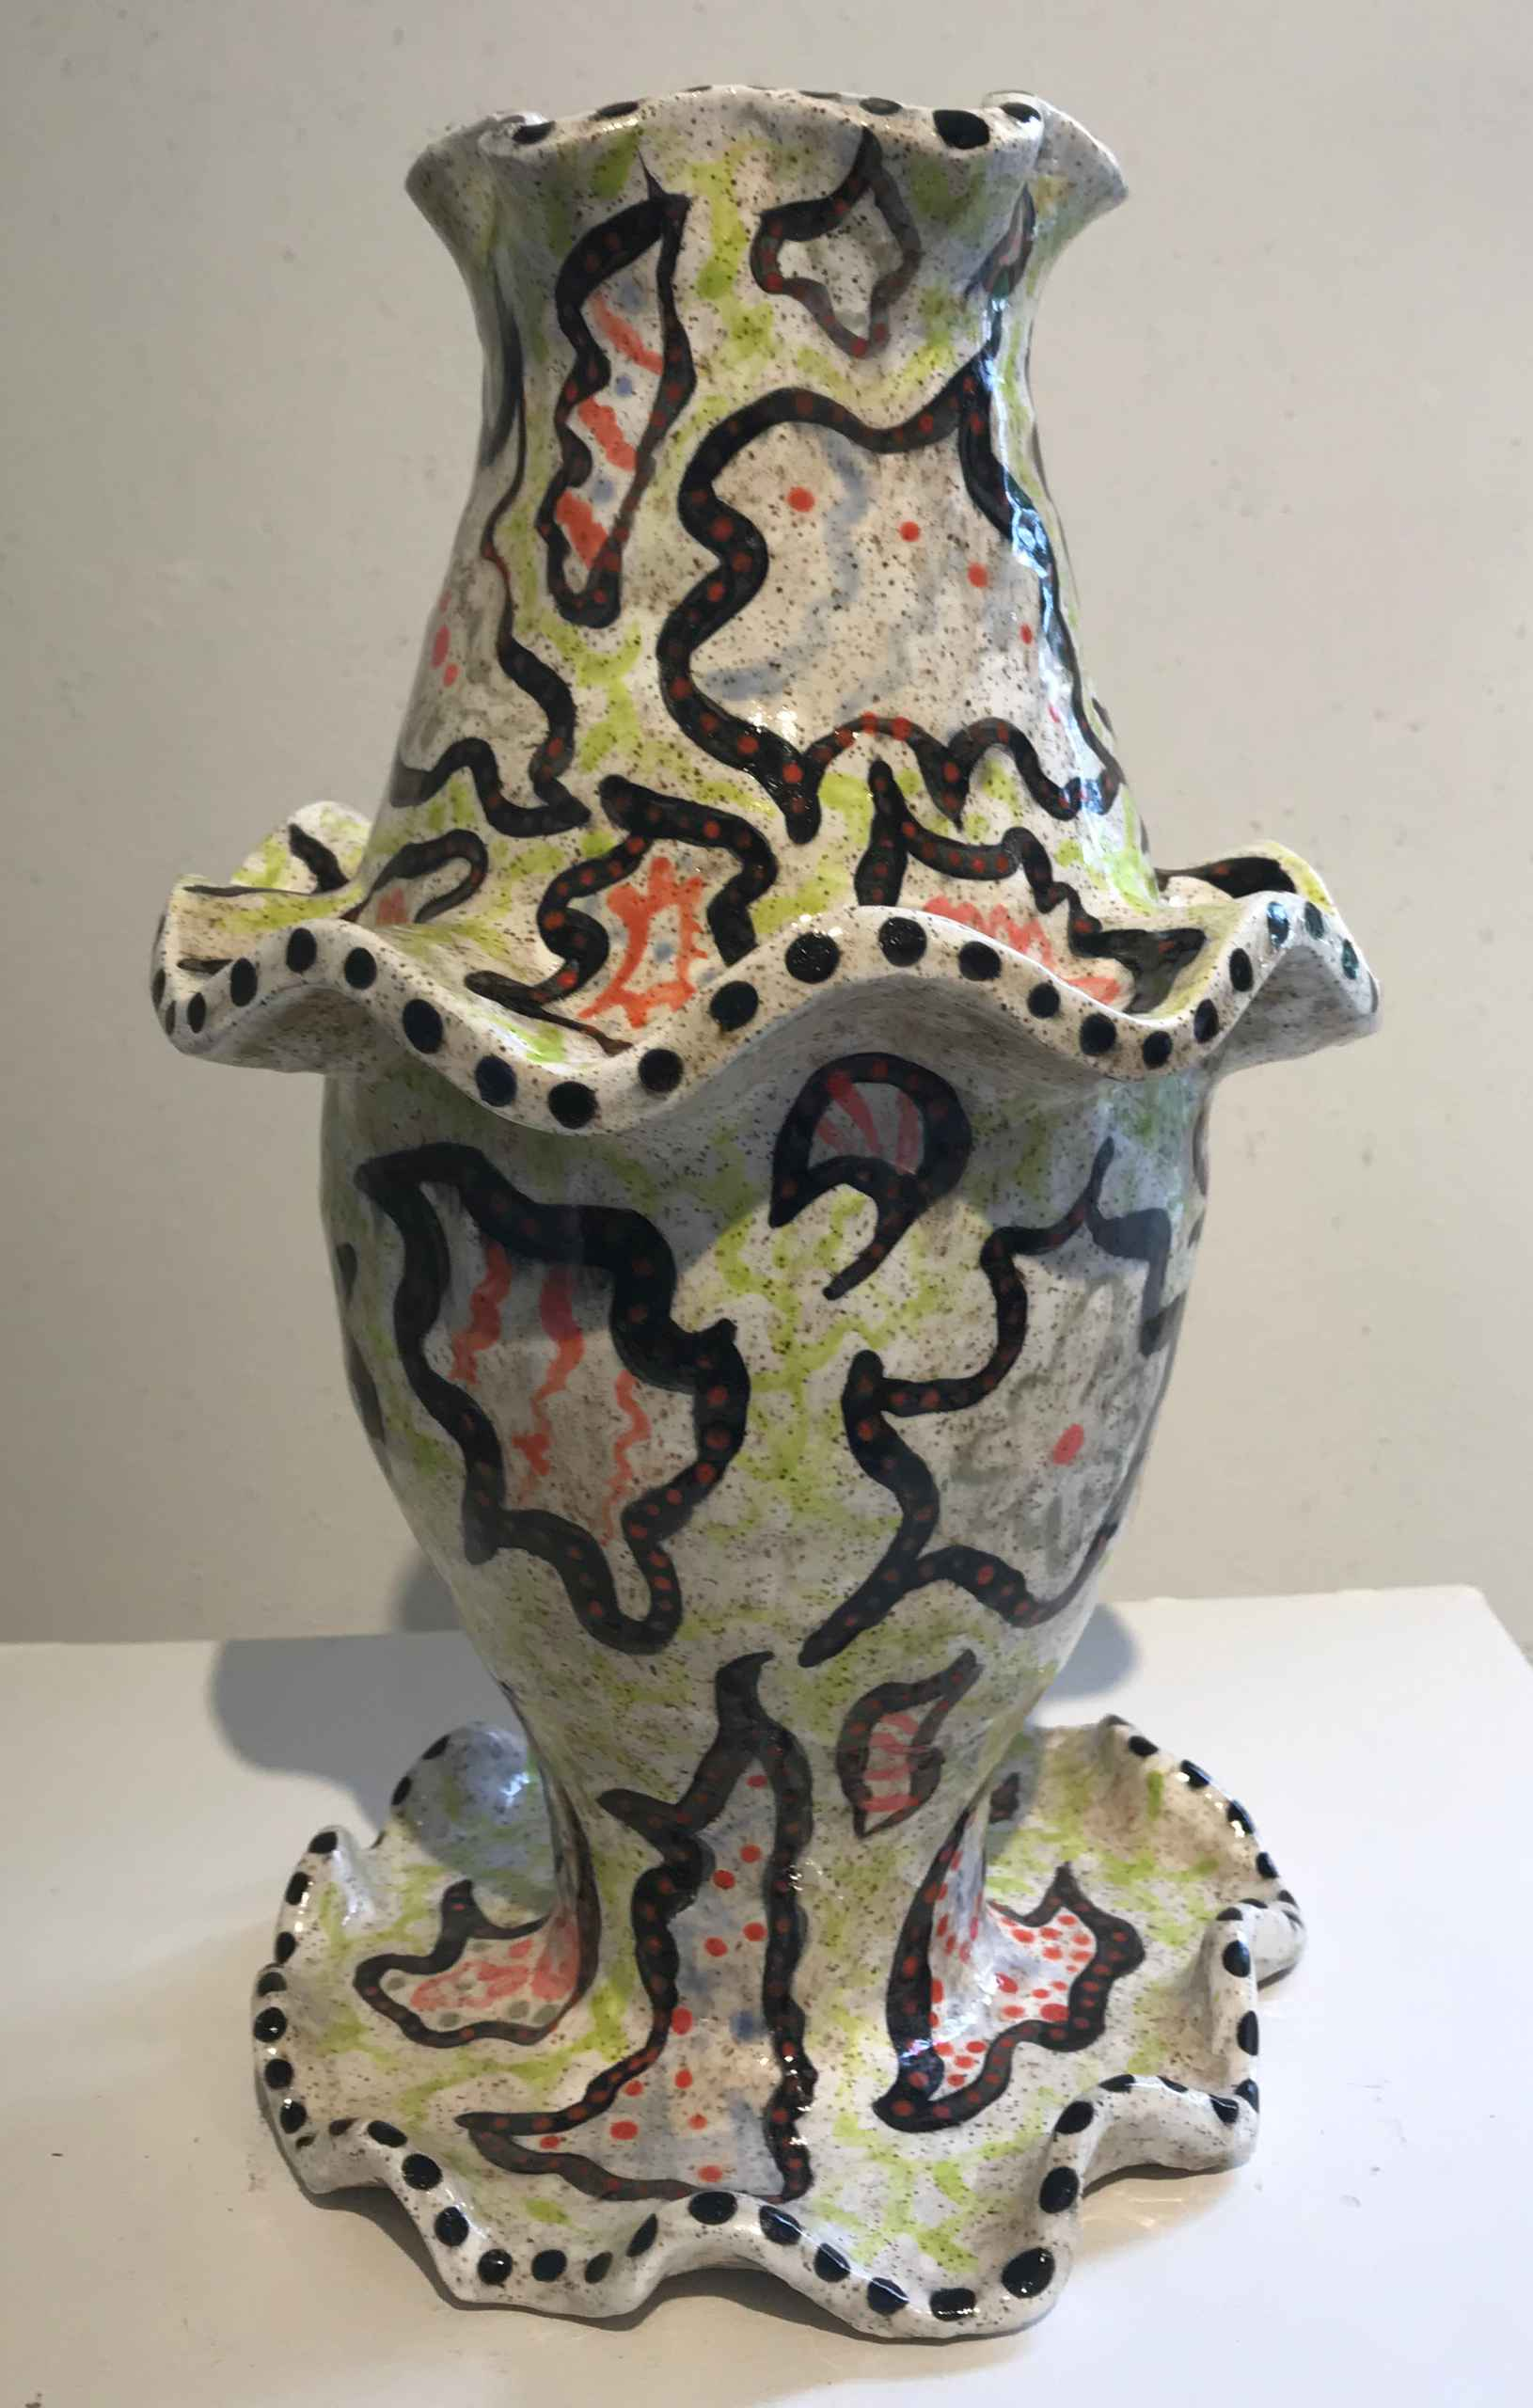 Colorful vase by Julian Yost